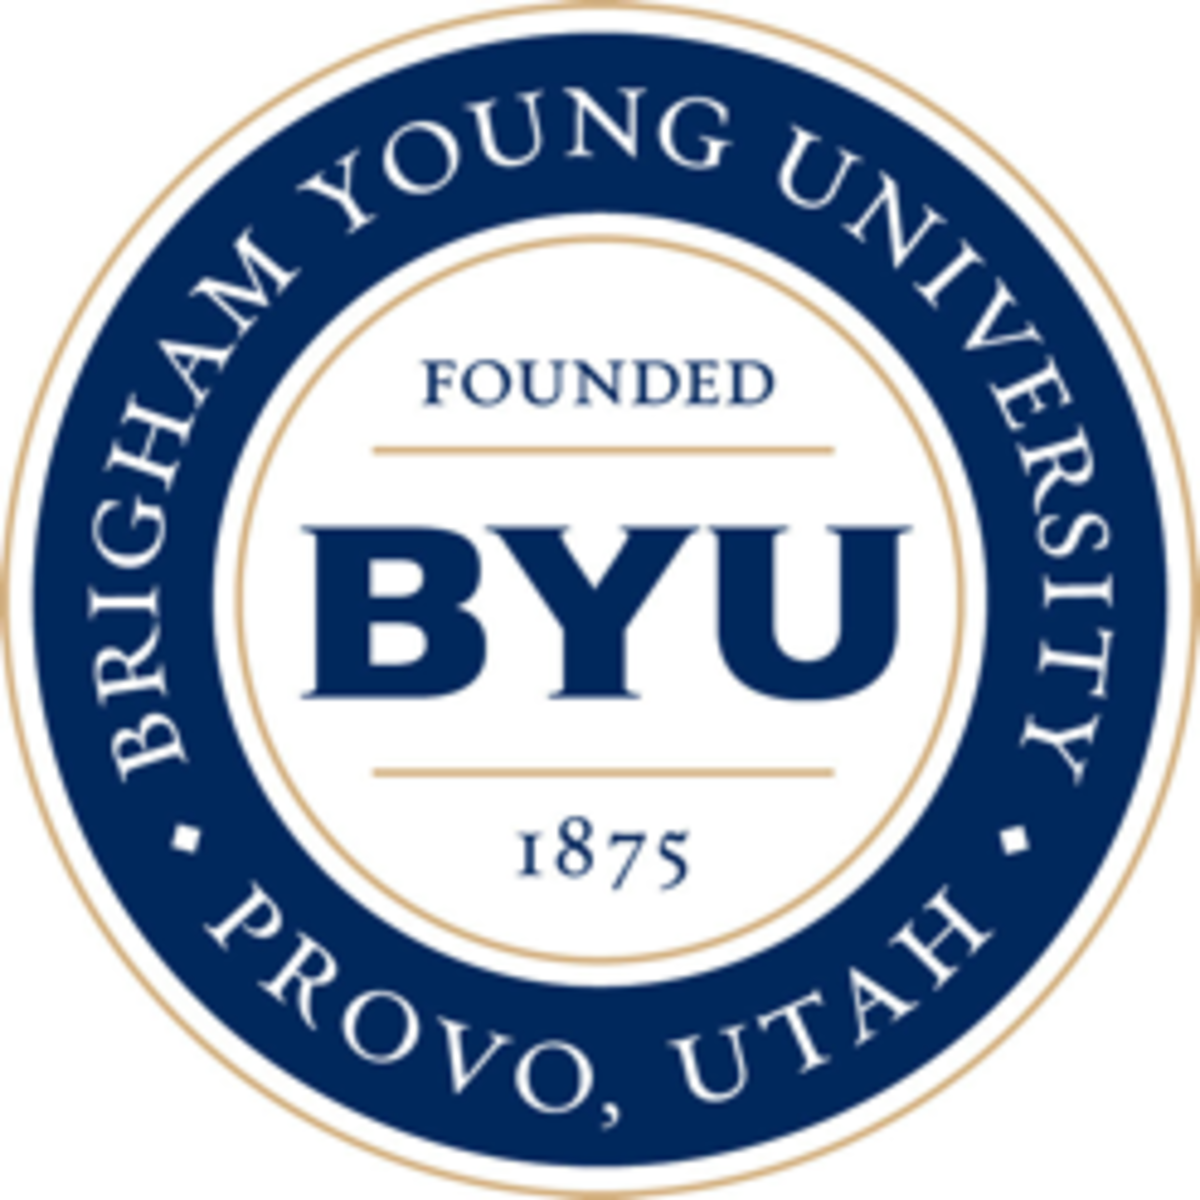 sponsored by Brigham Young University